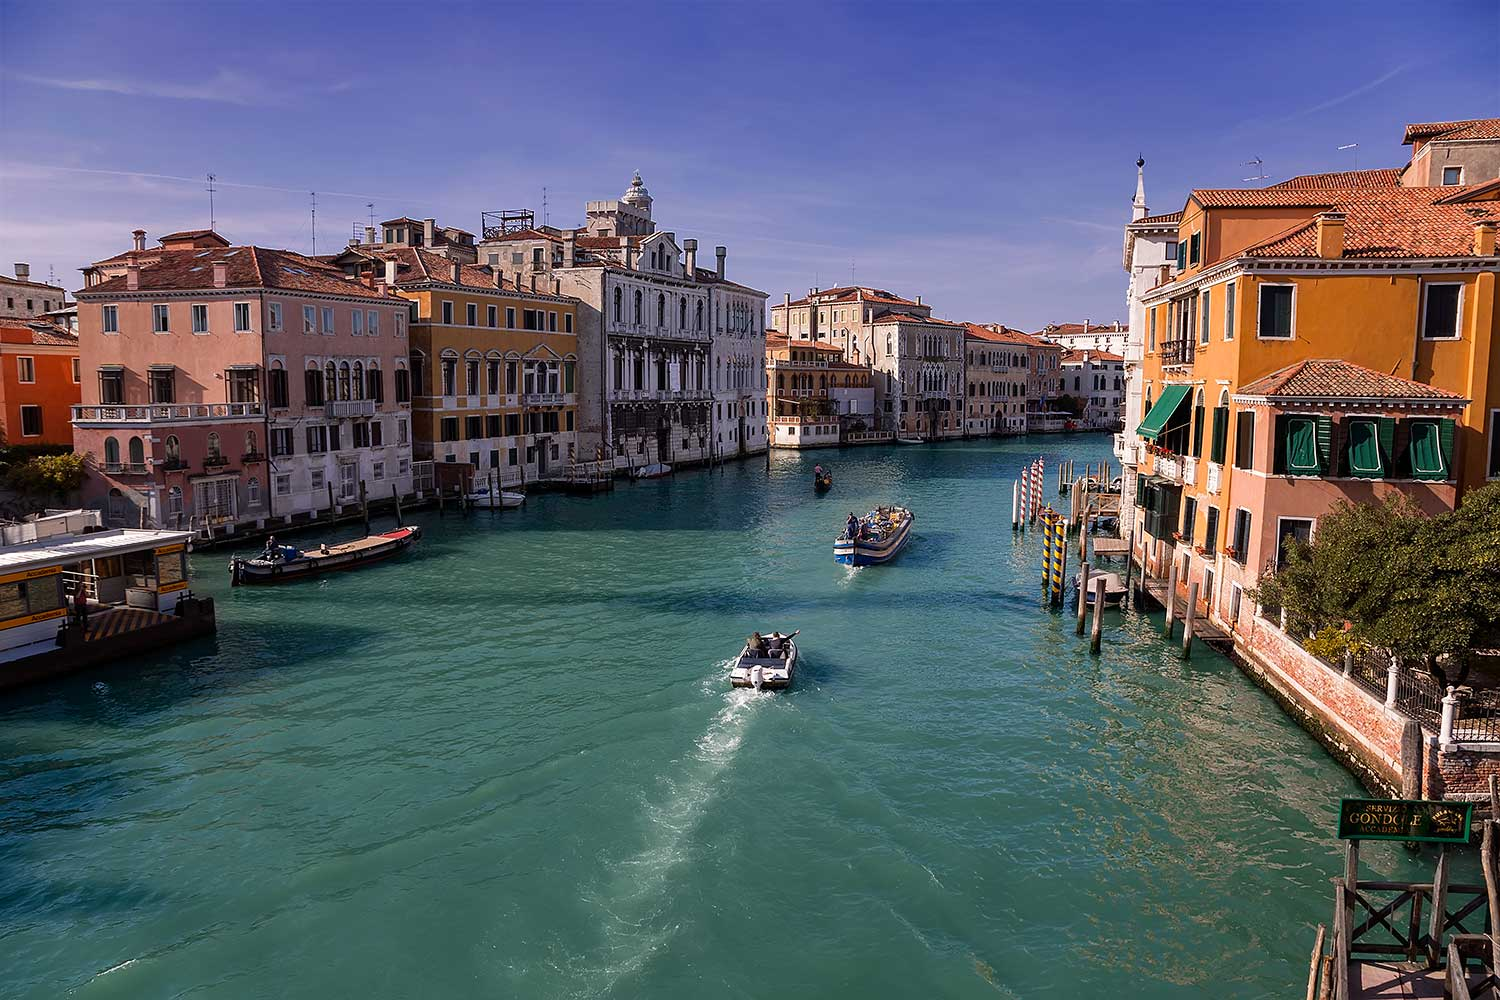 venice-canal-view-italy